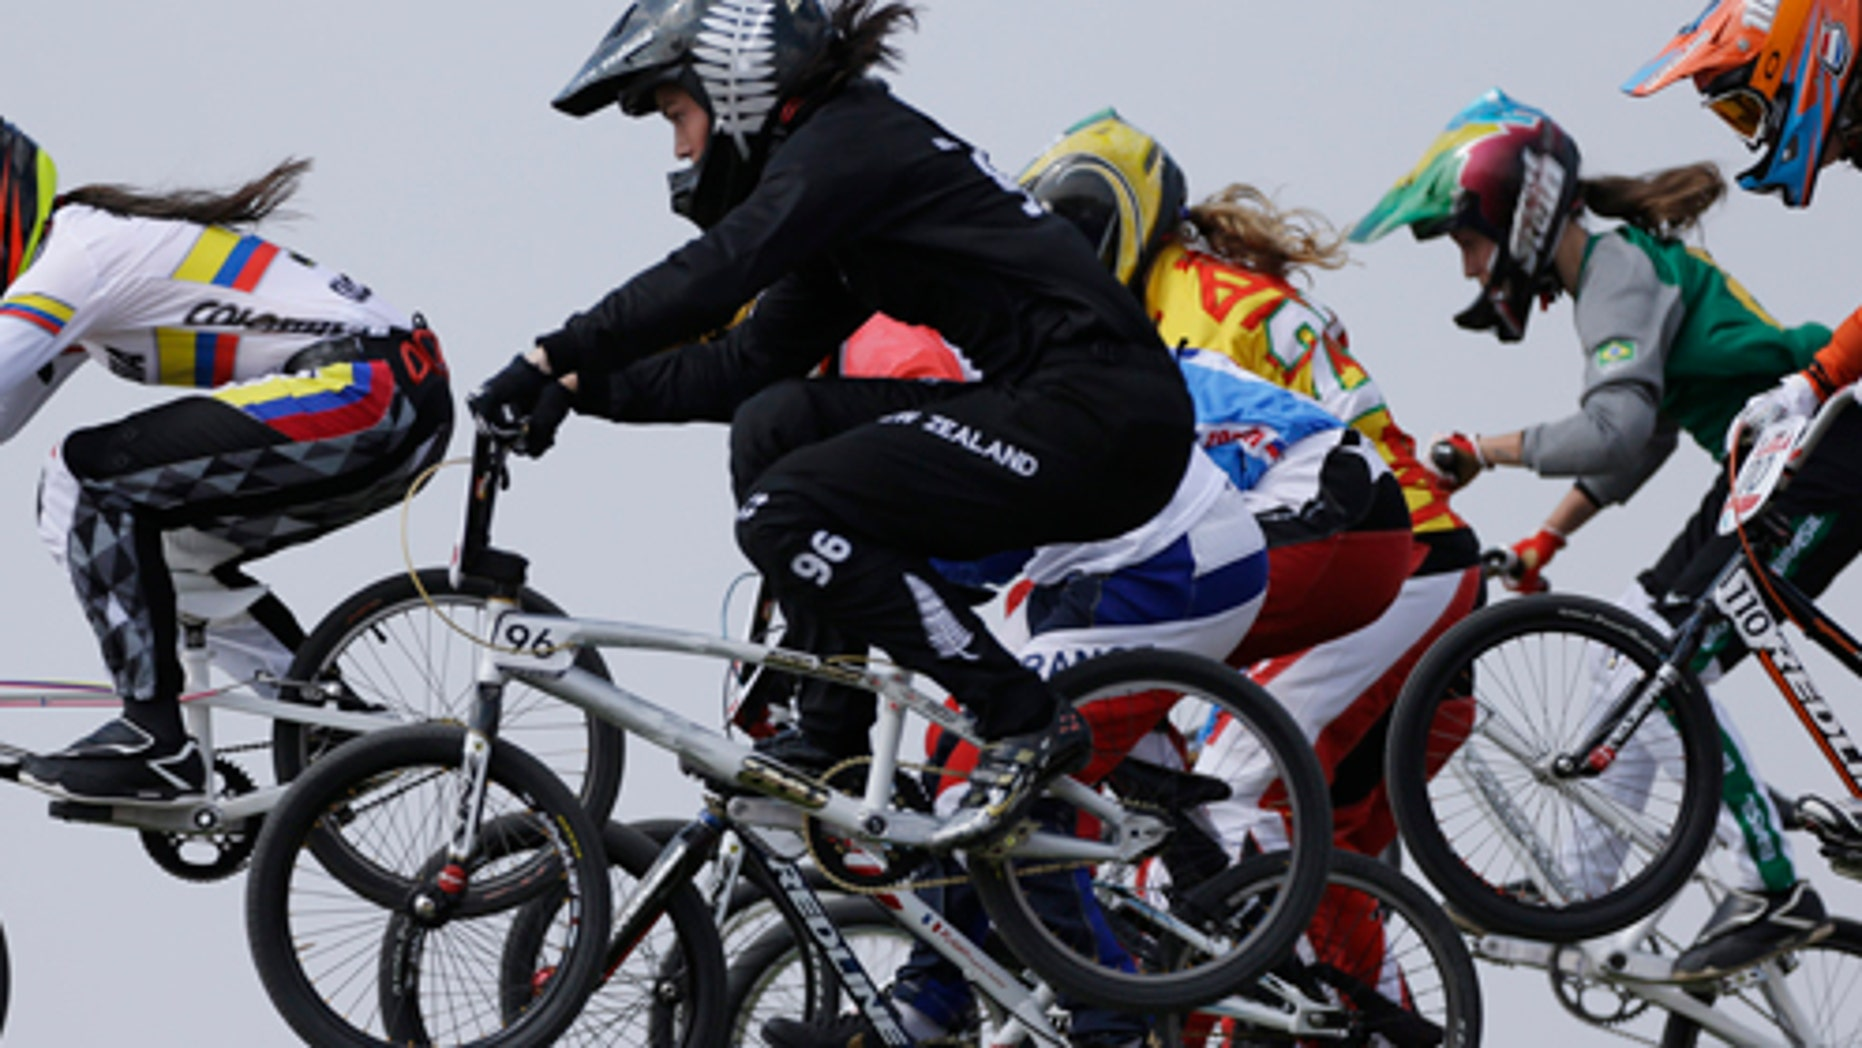 Colombia's Mariana Pajon (5) leads the competition in a BMX cycling women's semifinal run during the 2012 Summer Olympics, Friday, Aug. 10, 2012, in London. (AP Photo/Matt Rourke)